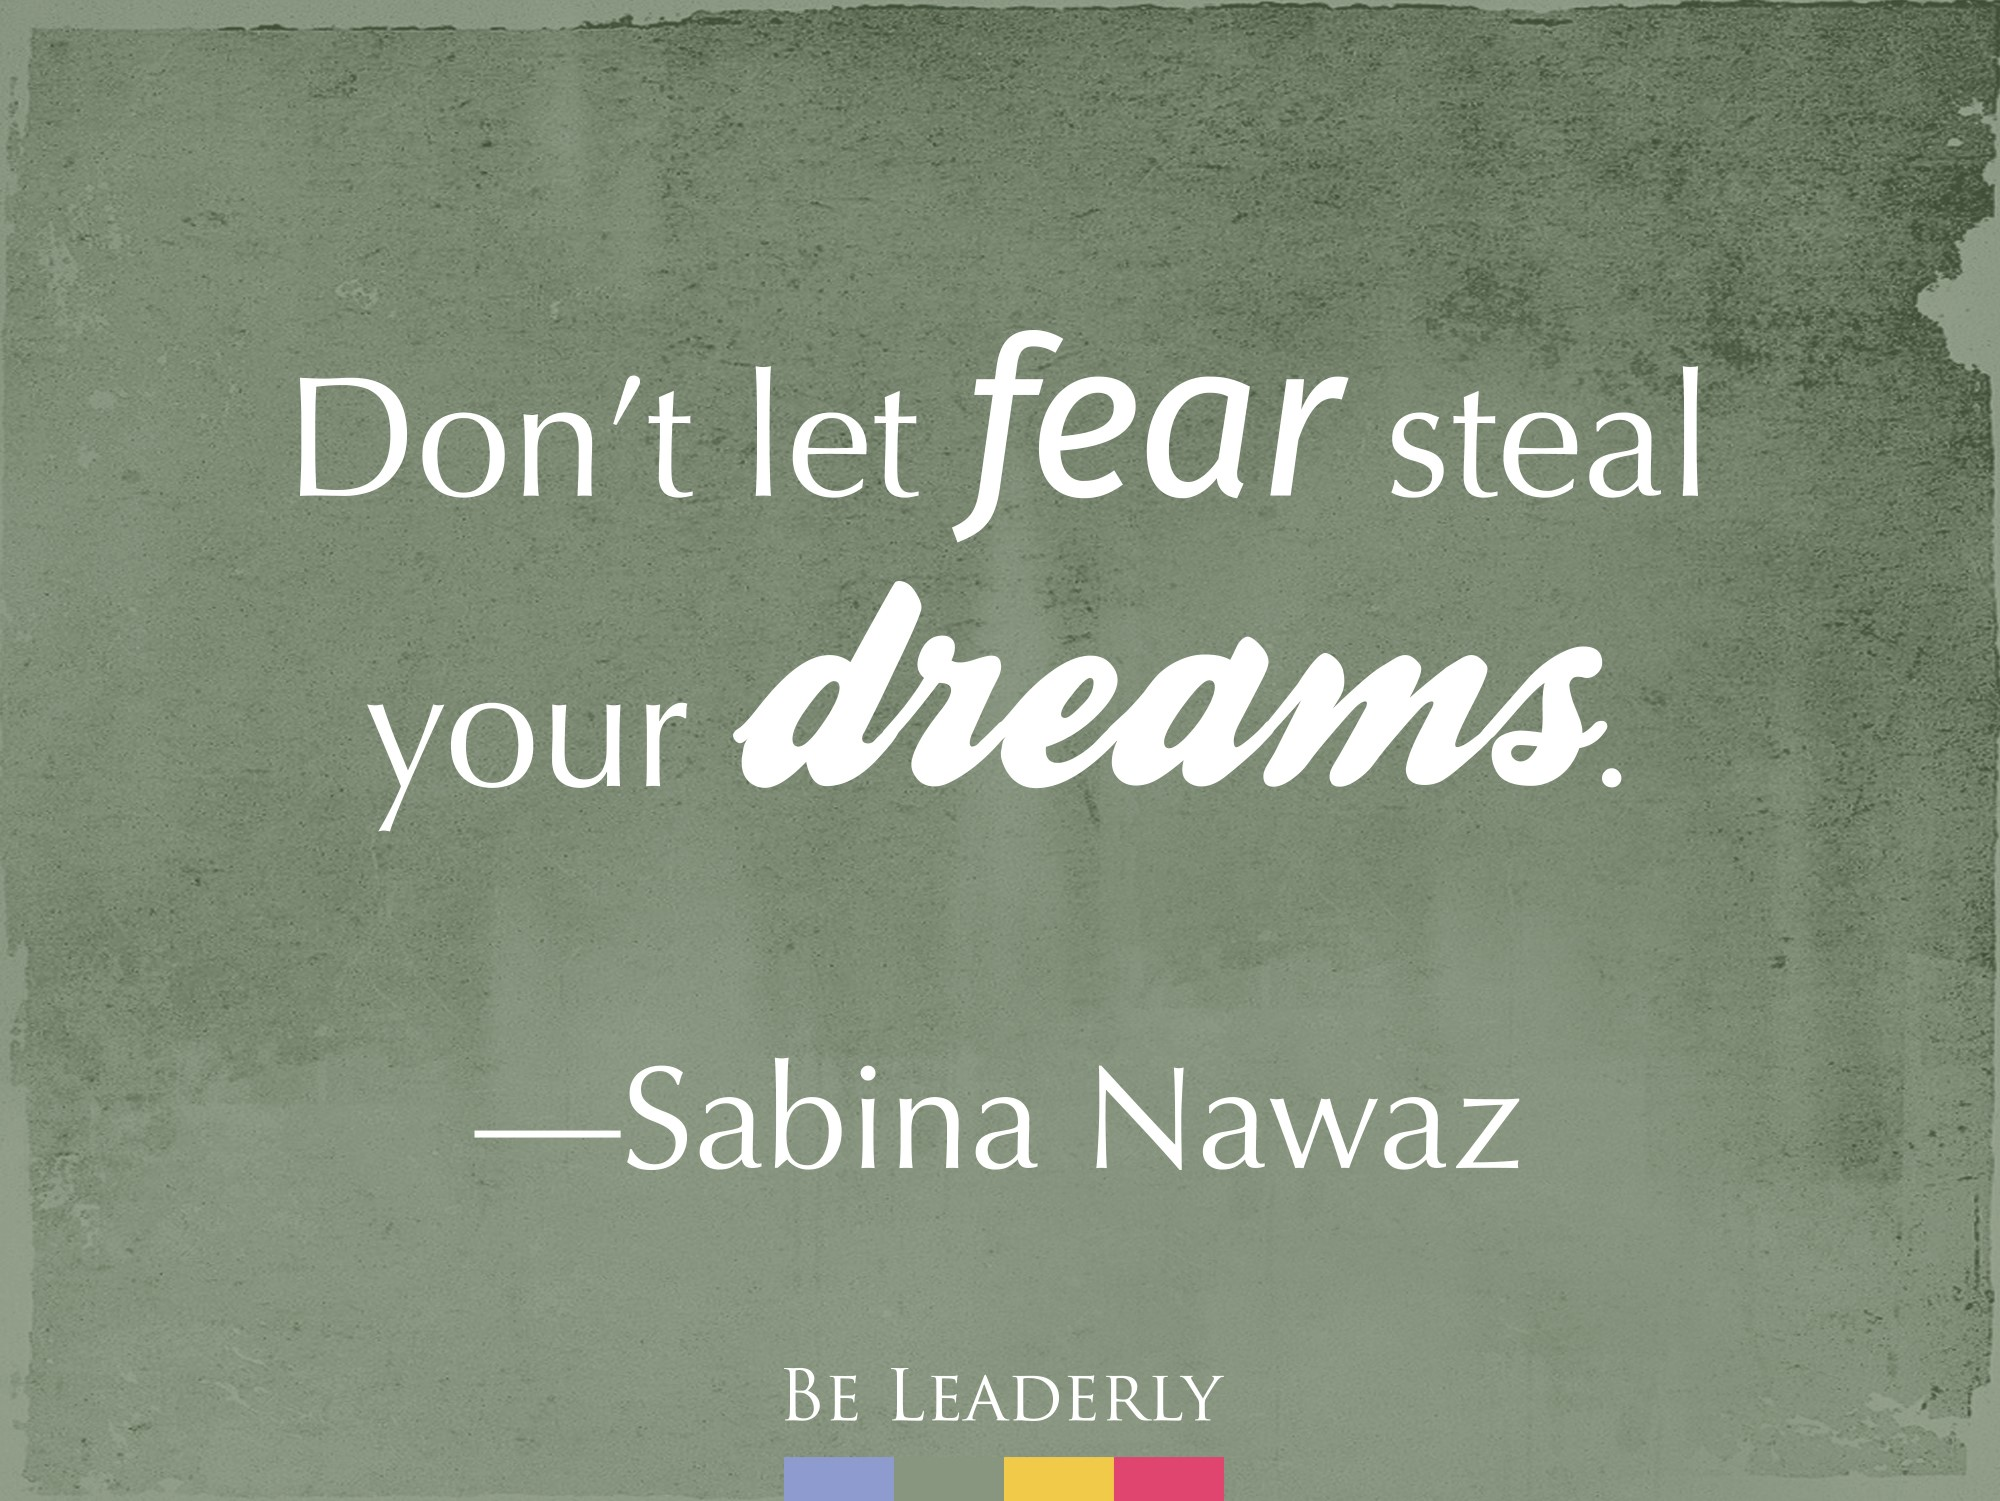 Don't let fear steal your dreams